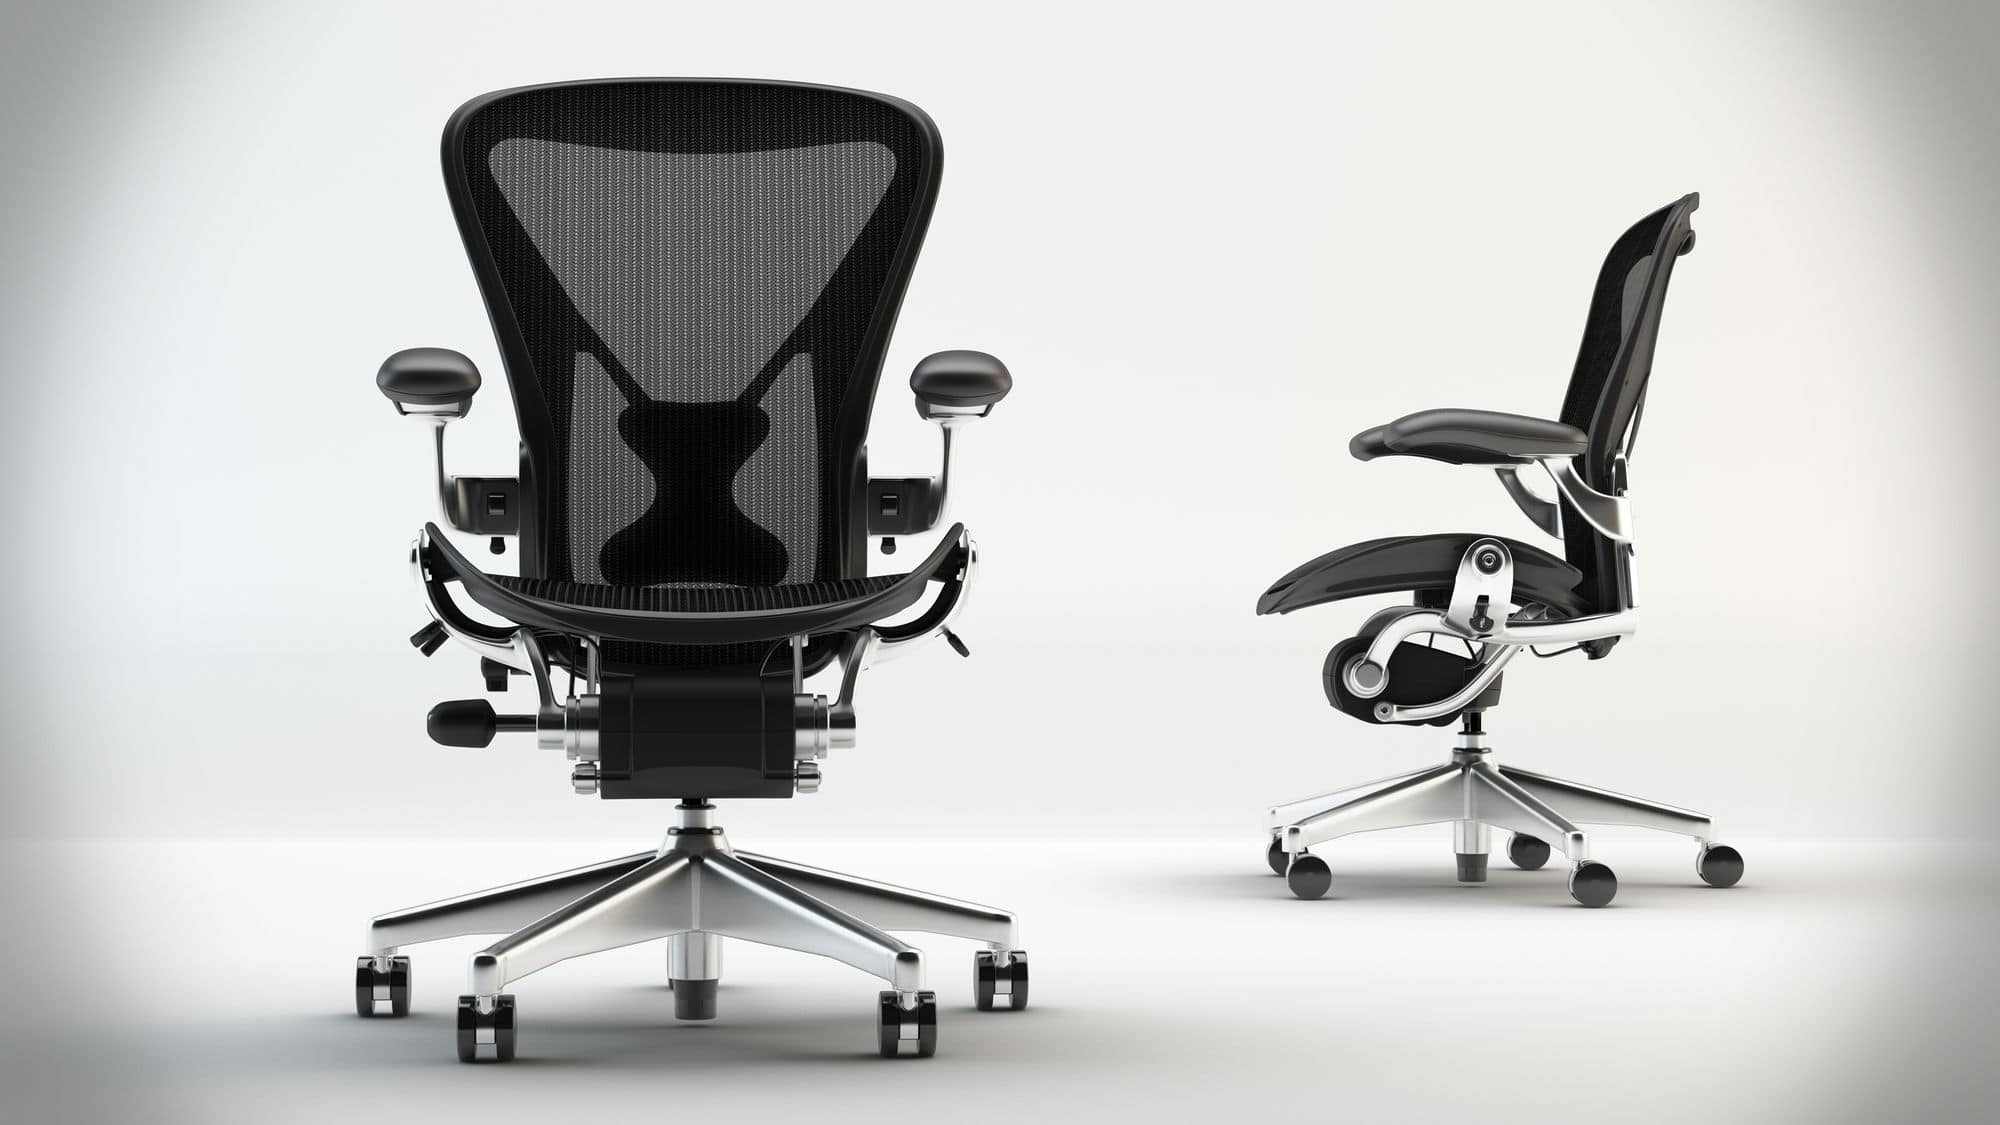 best ergonomic chairs in india chair bed top 16 office 2019 editors pick herman miller aeron